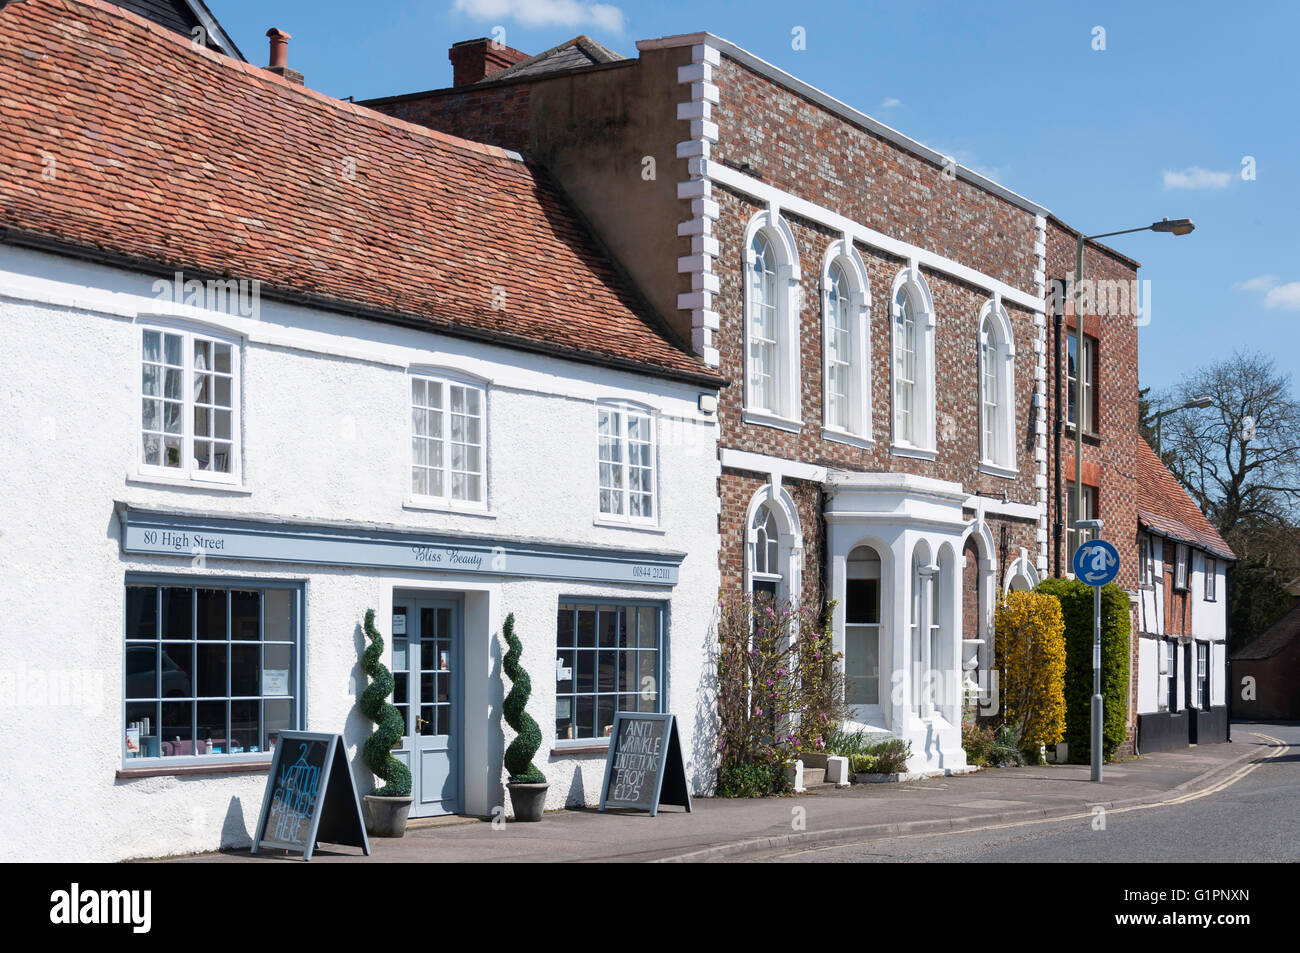 Period buildings on High Street, Thame, Oxfordshire, England, United Kingdom - Stock Image